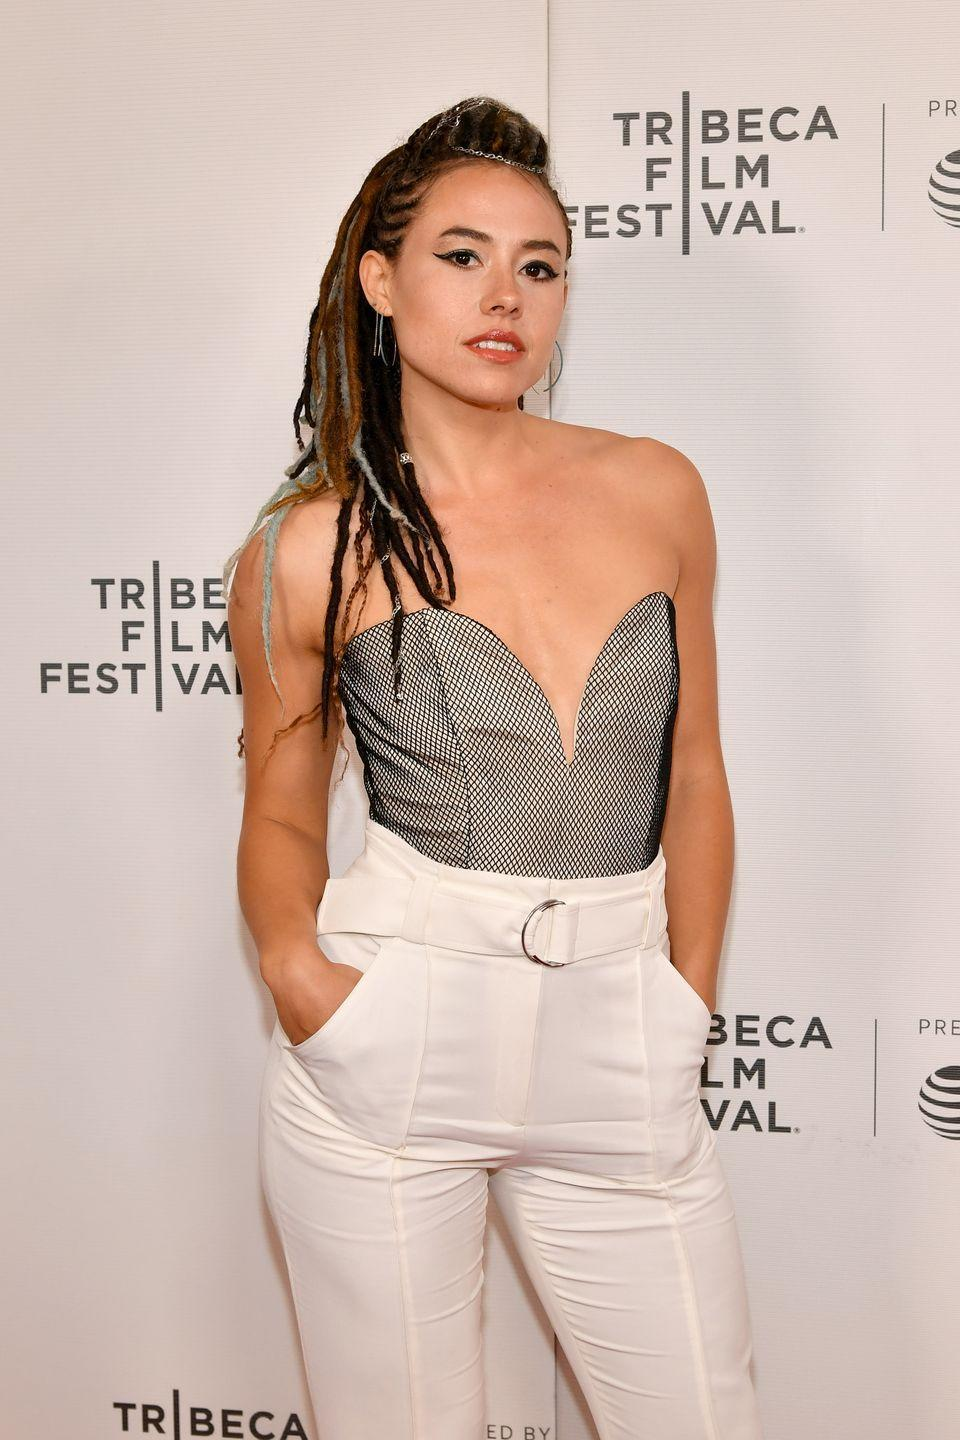 """<p>Since the show ended, Burge has had relative success on the small screen, portraying Jessica """"Chili"""" Chilton in NBC's <em>Chicago</em> franchise. She was most recently seen in the television series <em>What Would Diplo Do?</em>.</p>"""